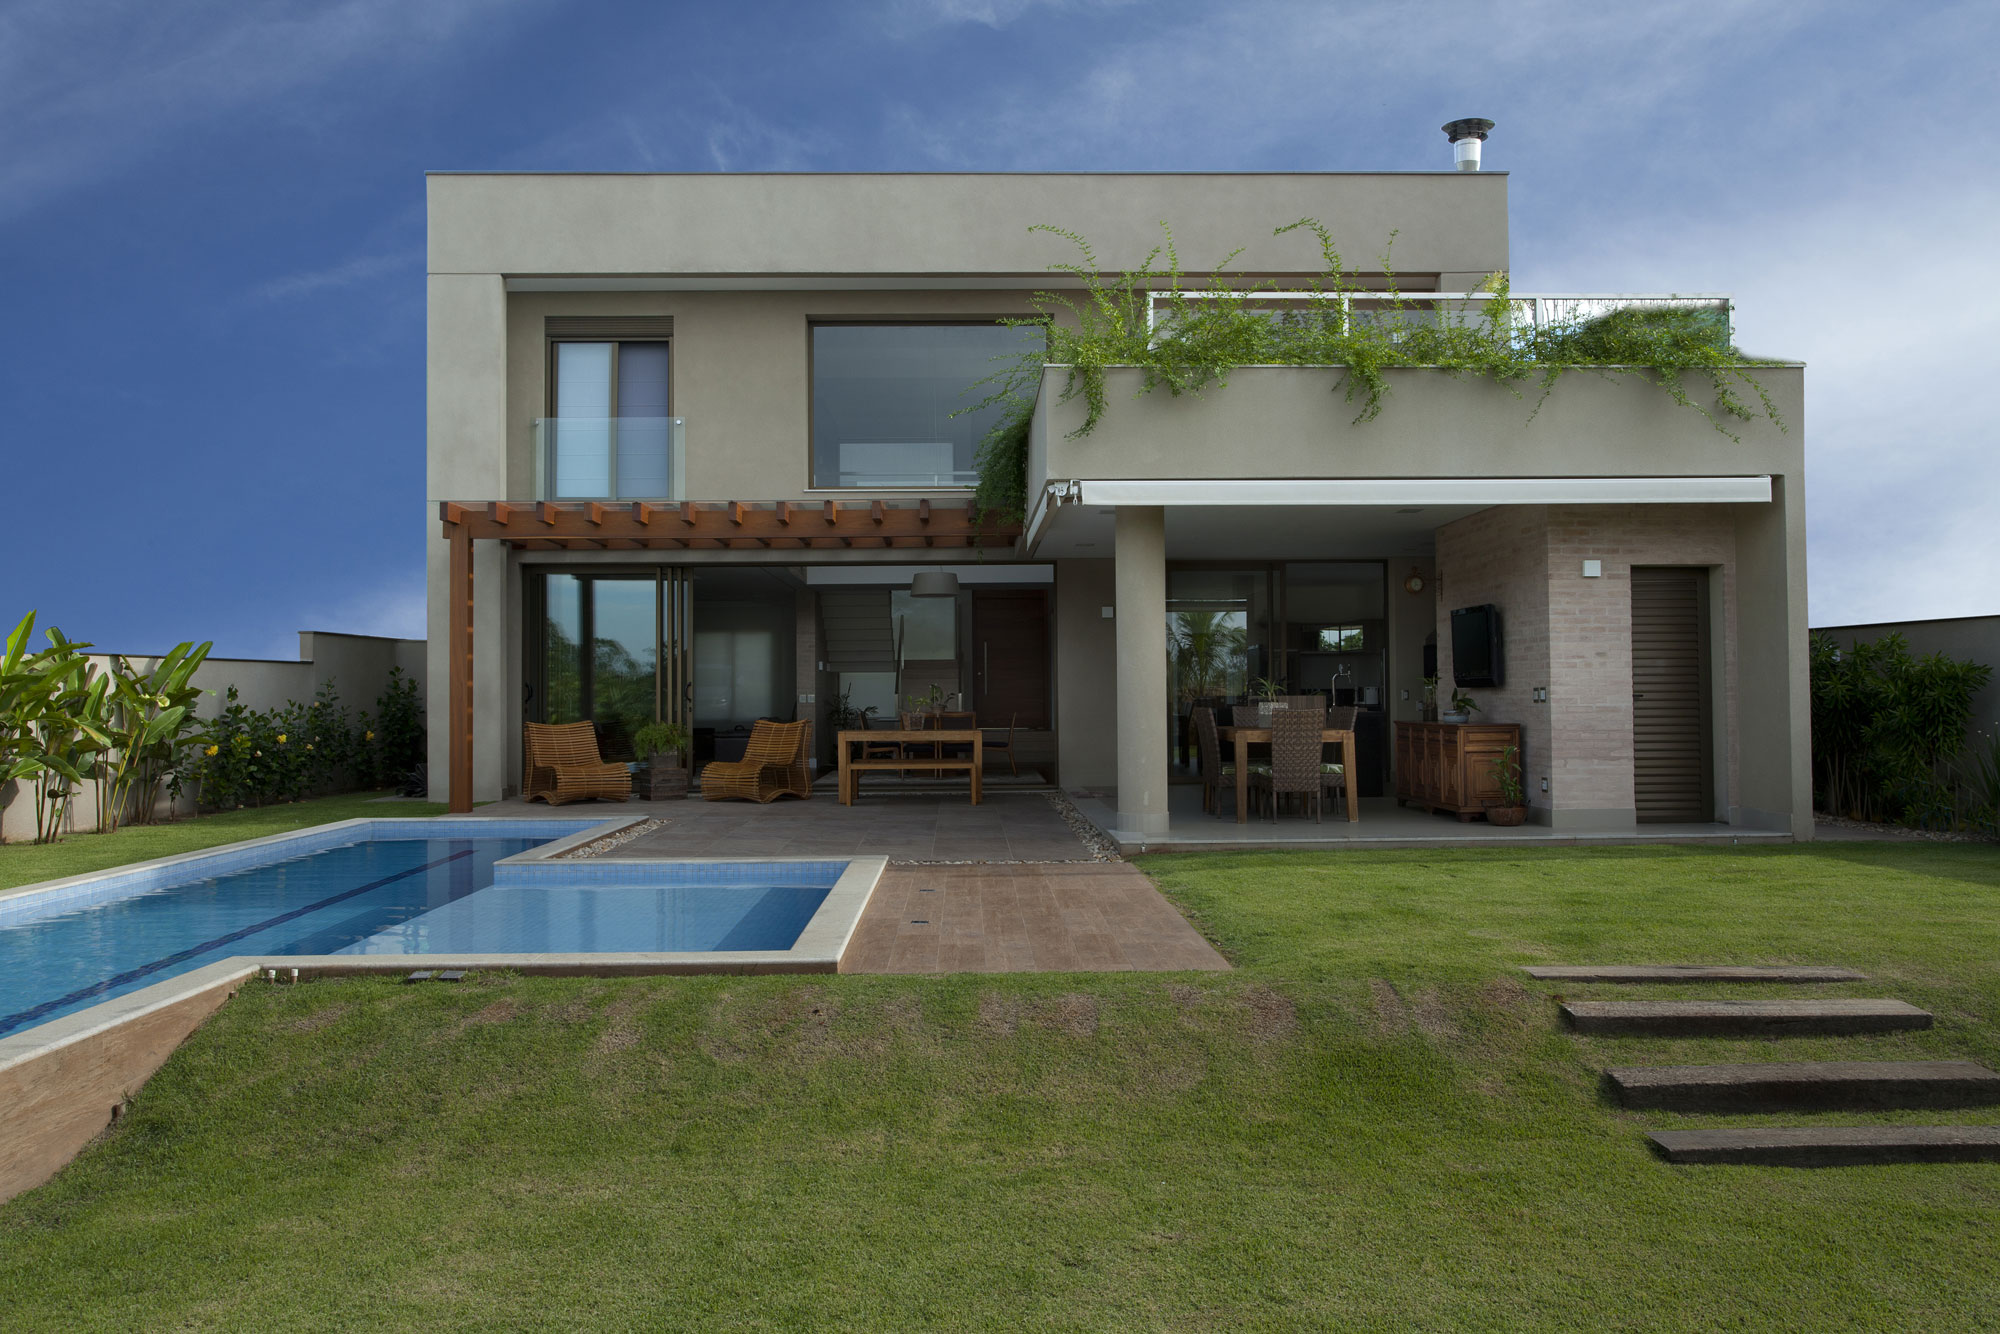 Residencia df by pupo gaspar arquitetura architecture for Architecture and design